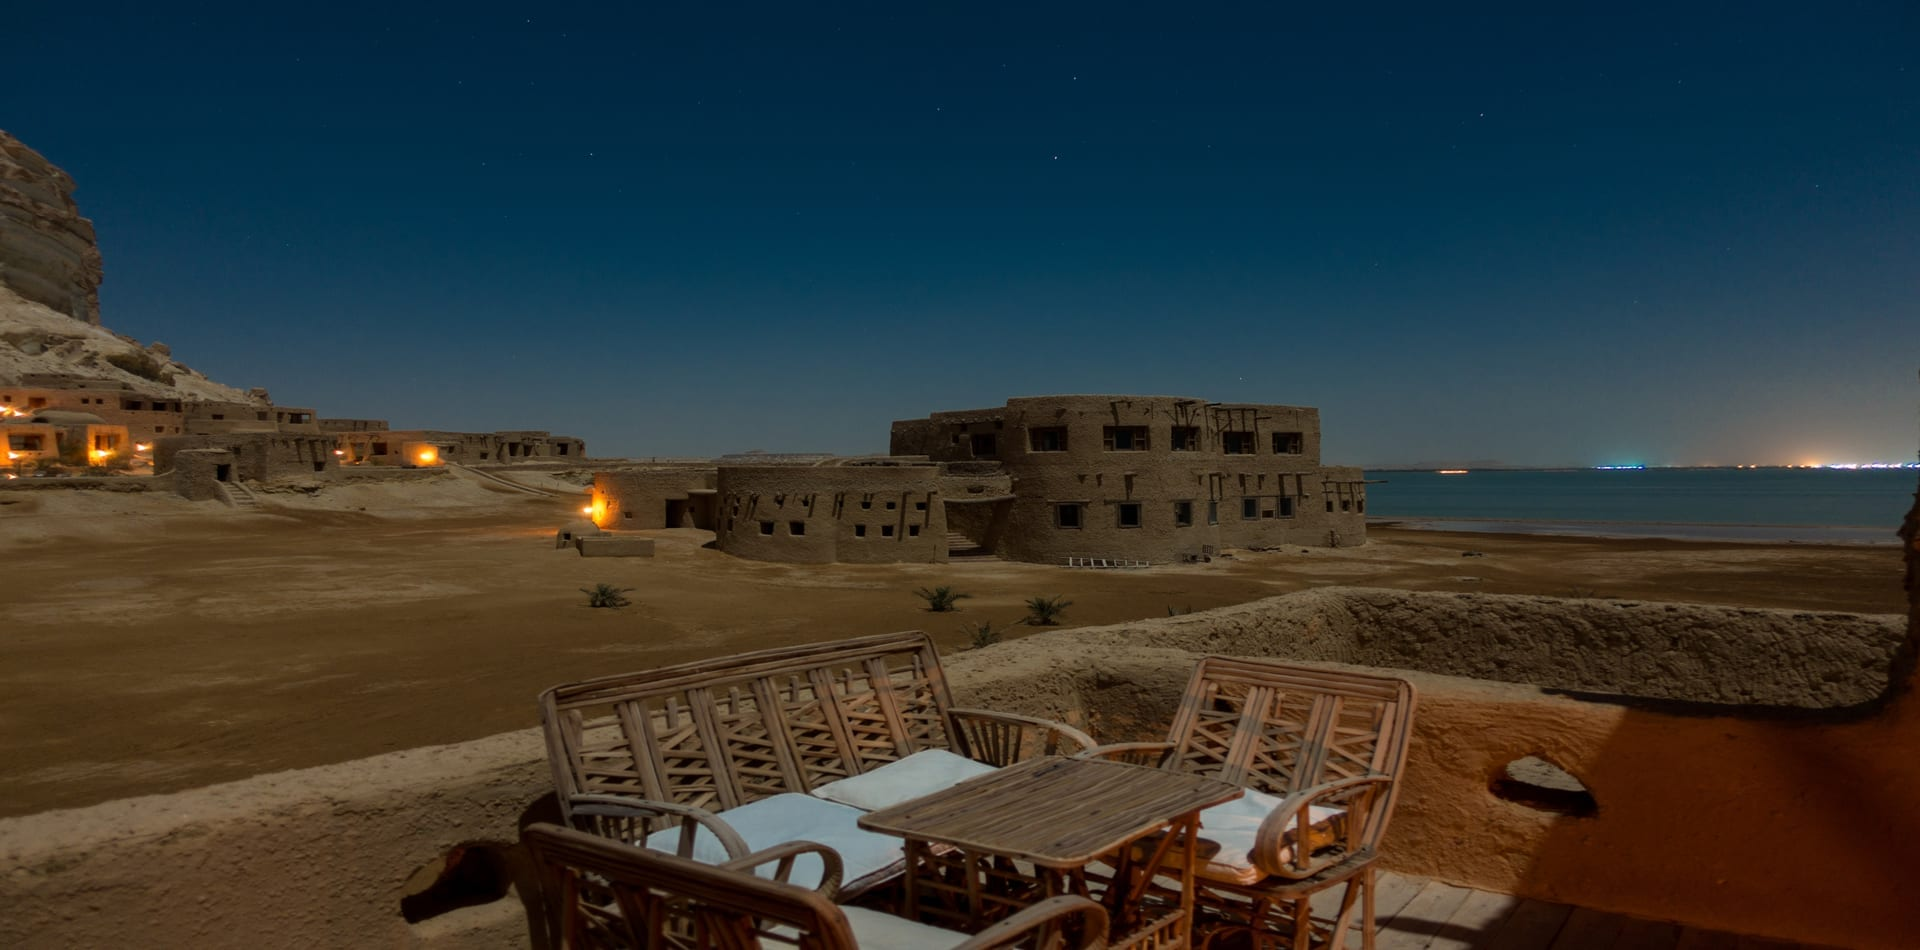 adrere amellal night time view Egypt